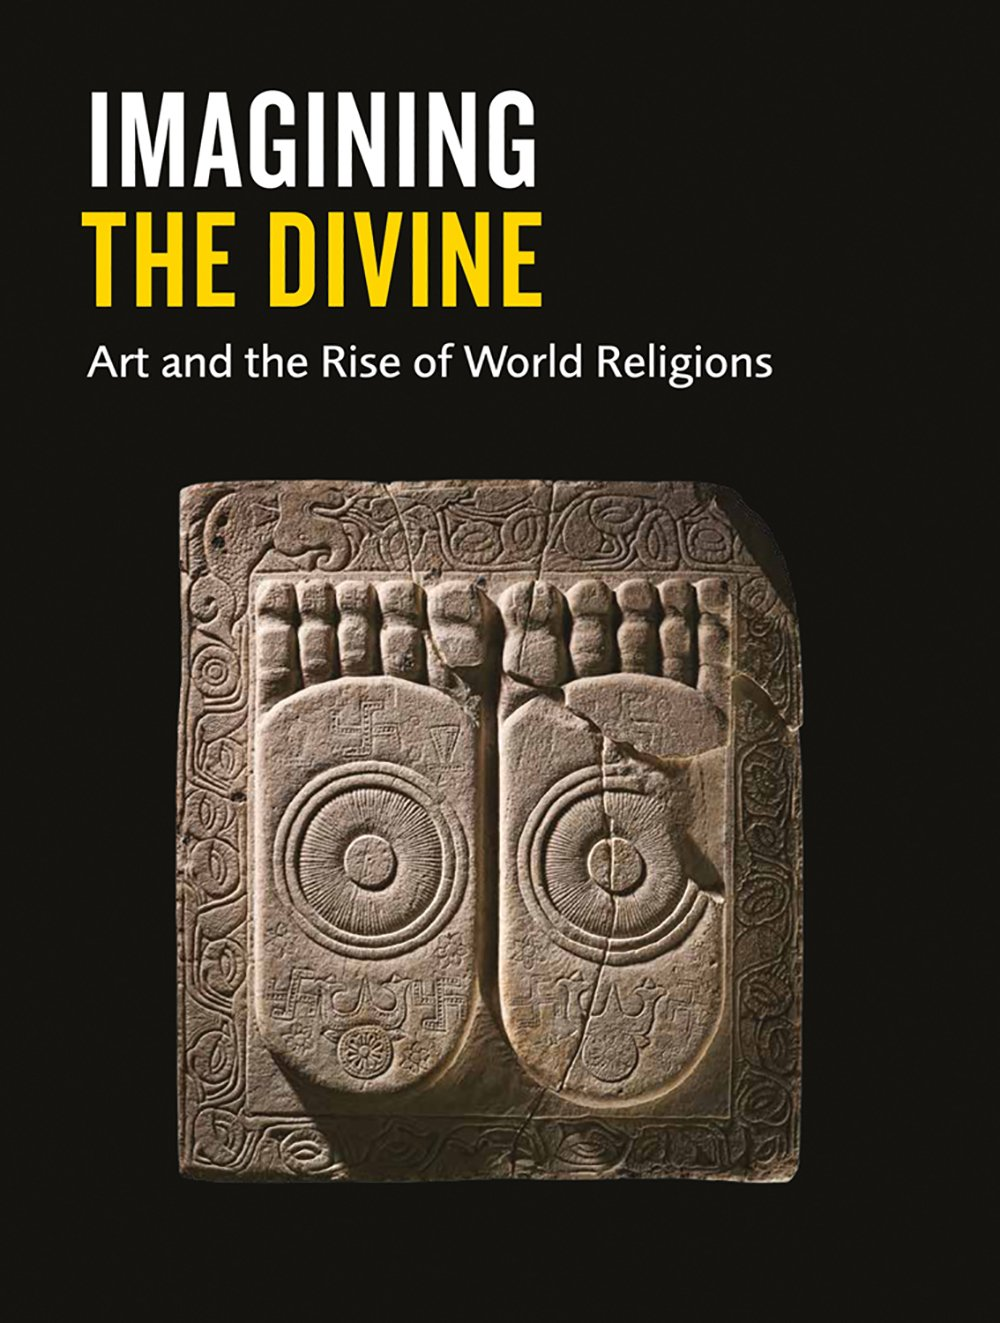 Imagining the Divine: Art and the Rise of World Religions